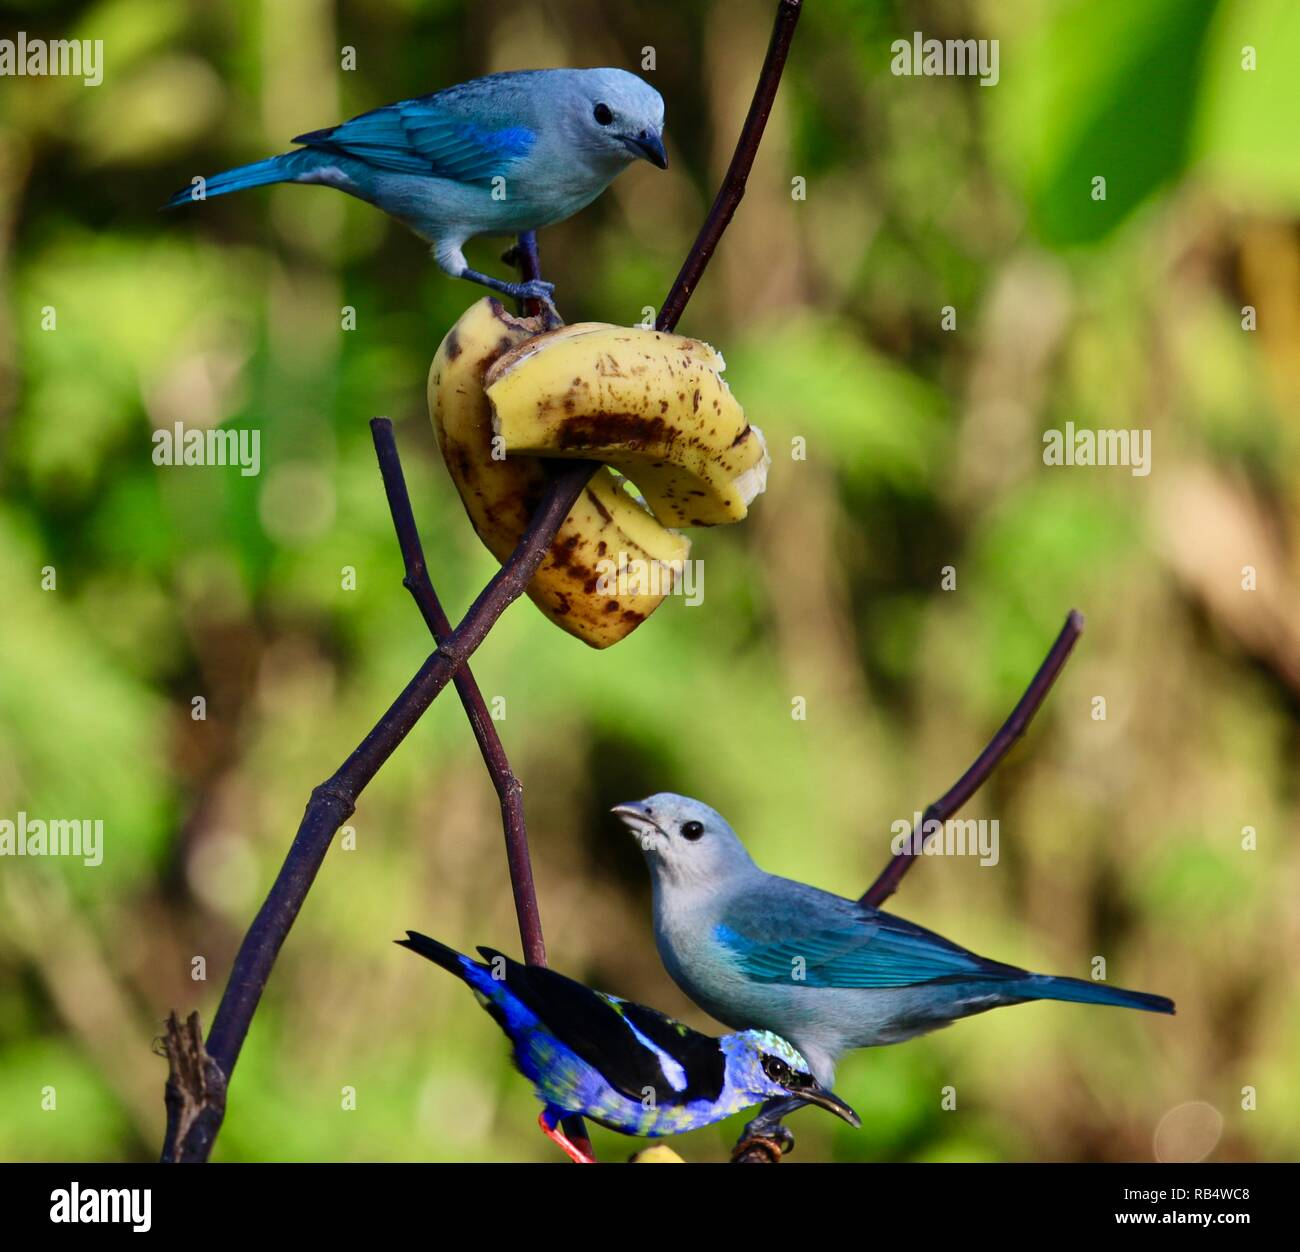 Blue Grey Tanagers enjoying their breakfast in Costa Rica. - Stock Image